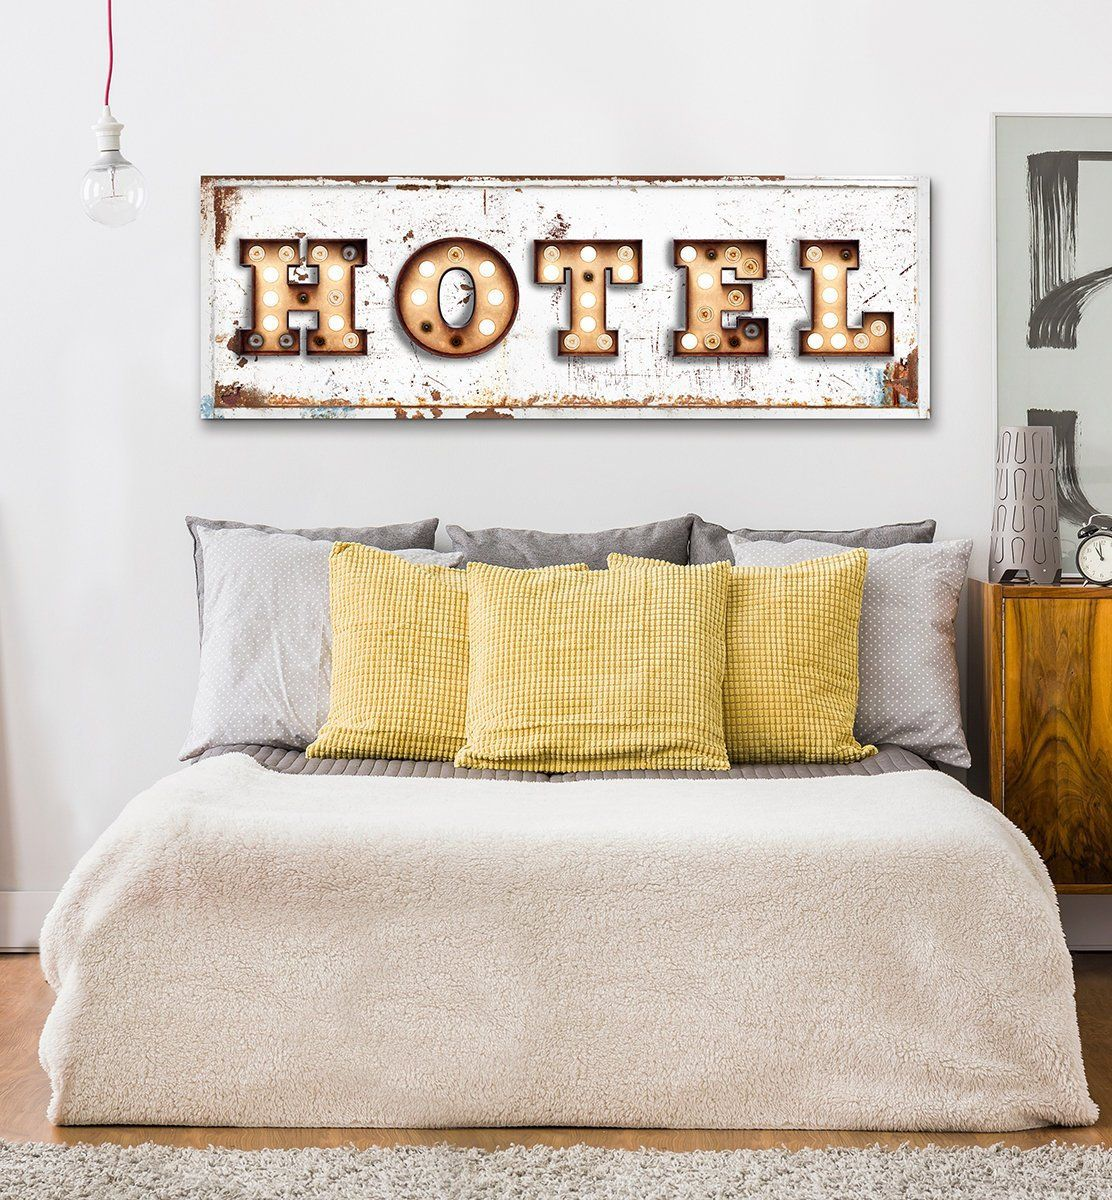 Hotel Sign Vintage Farmhouse Wall Decor Bedroom Wall Art Rustic Industrial Rustic Farmhouse Welcome Guest Room Large Canvas Sign Metal Motel Wall Decor Bedroom Bedroom Wall Farmhouse Wall Decor